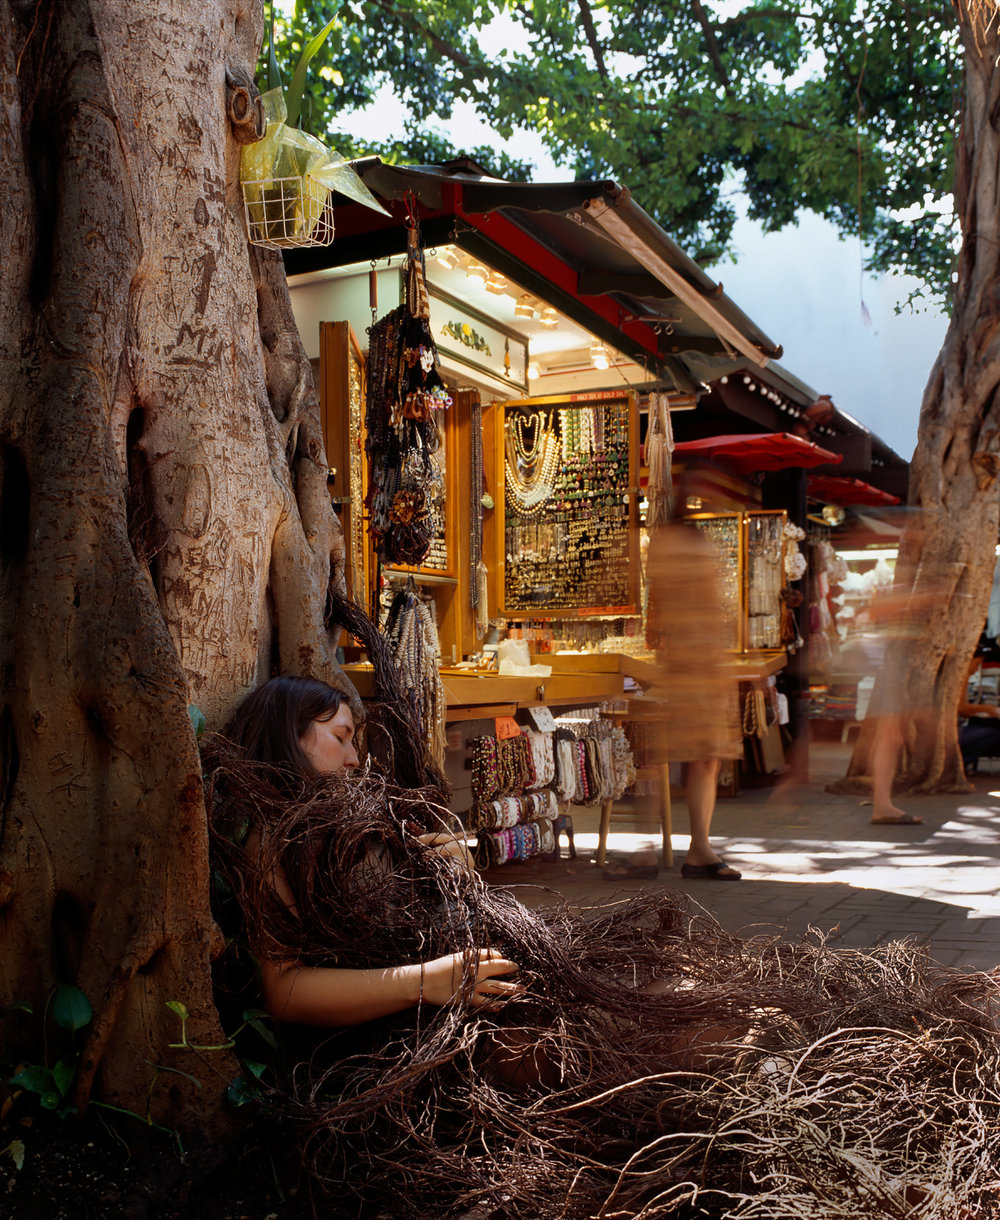 Searching for Roots in the International Marketplace/ Pa'i A'a Kapa